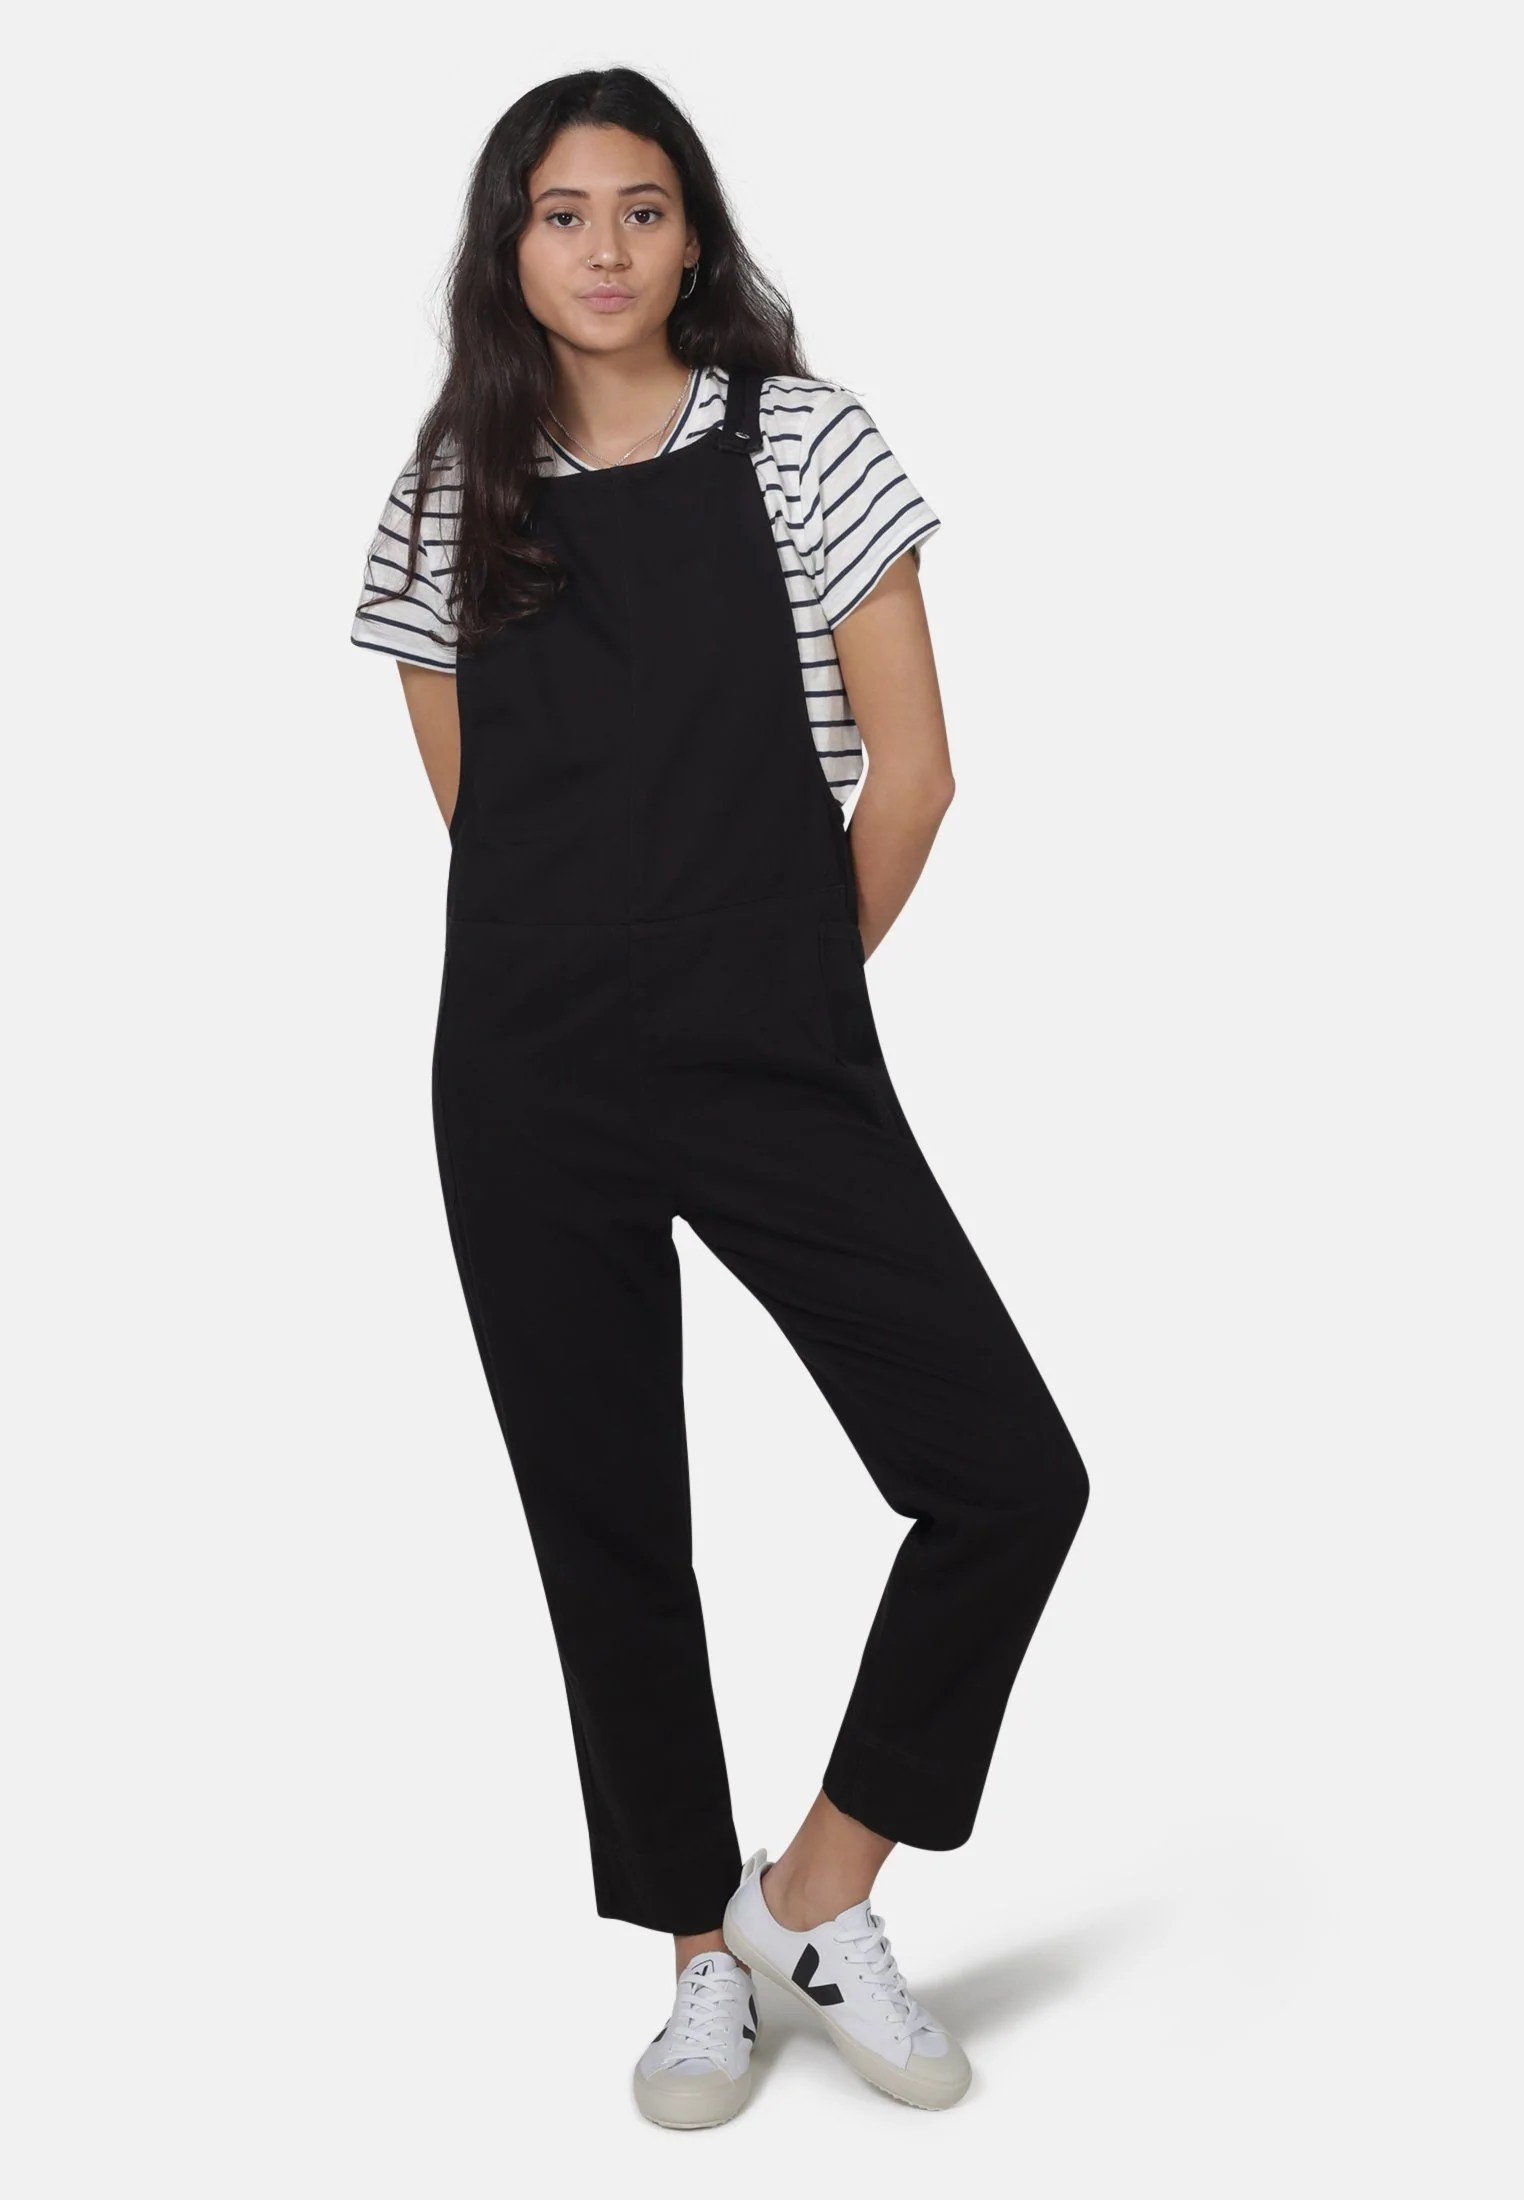 Overall Kopen Organic Women S Clothing Ethical Clothing For Women Komodo Fashion